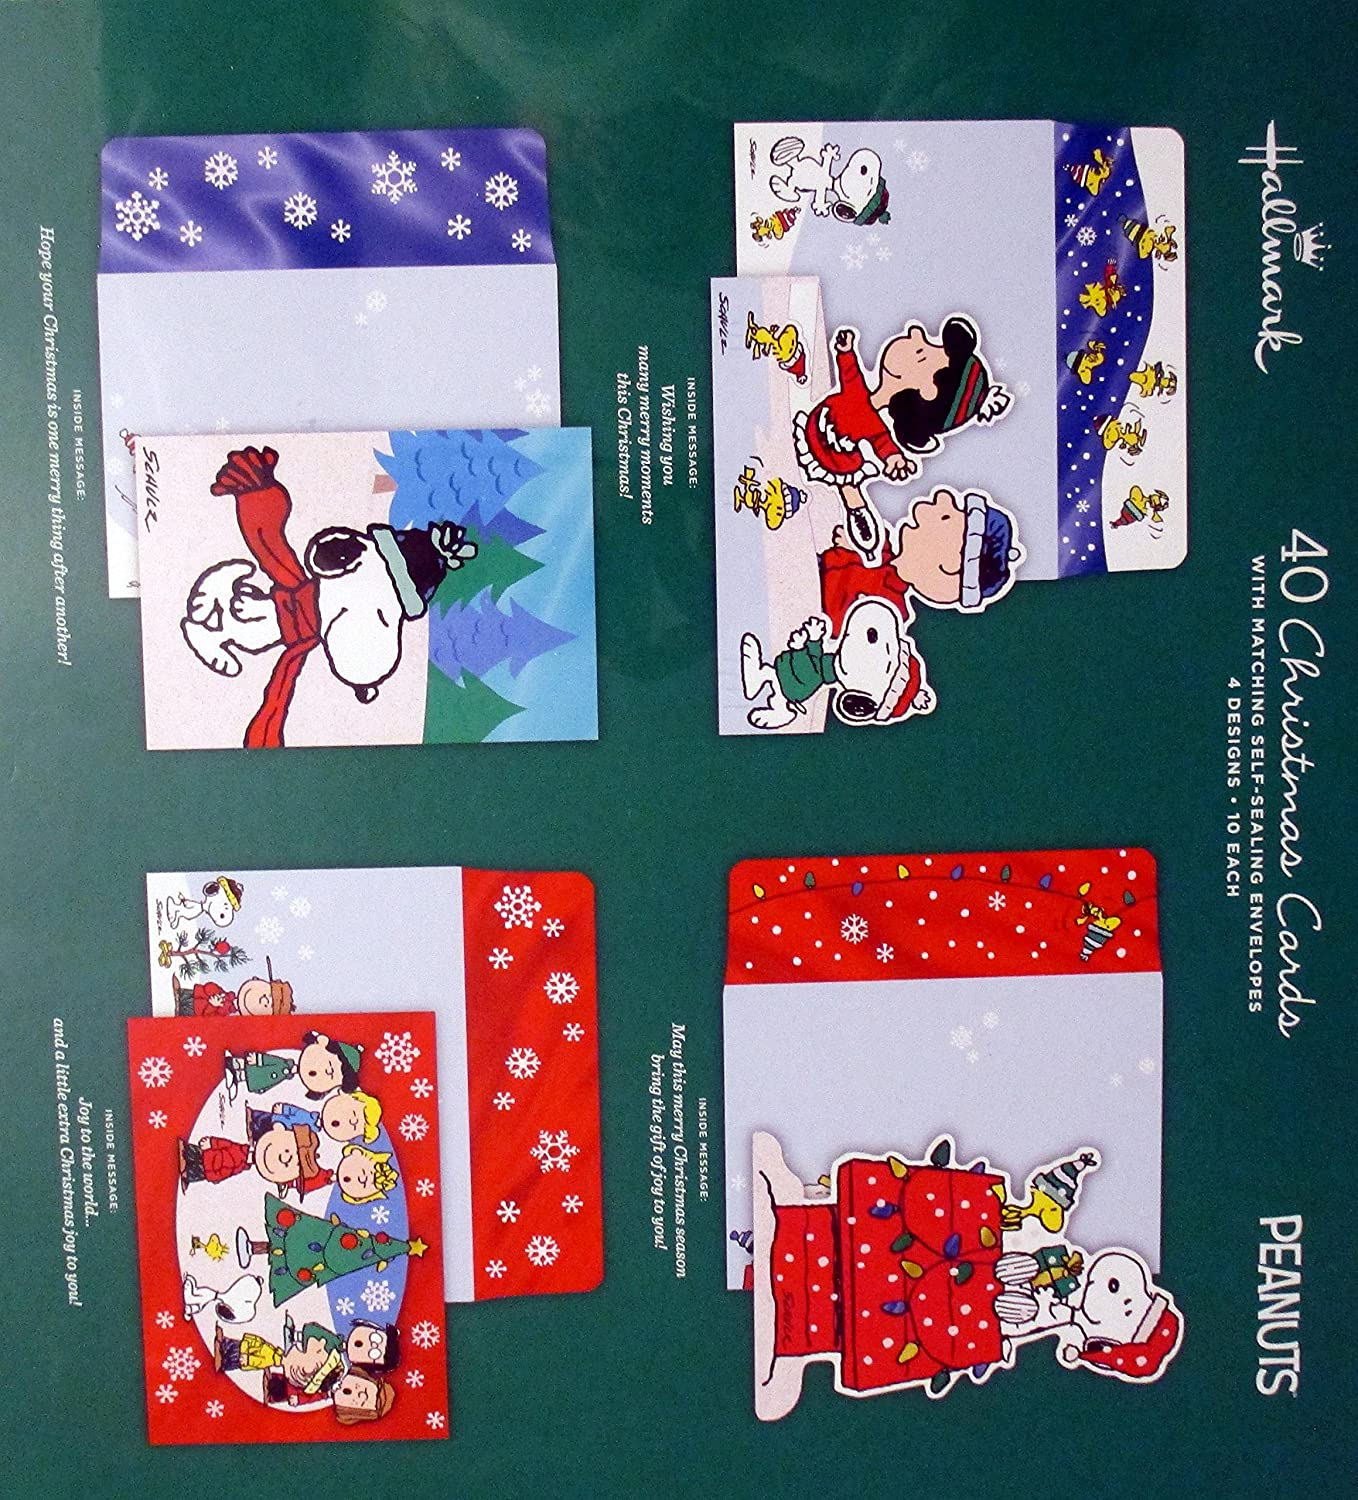 Amazon.com : Hallmark Peanuts Traditional Christmas Cards with Foil ...